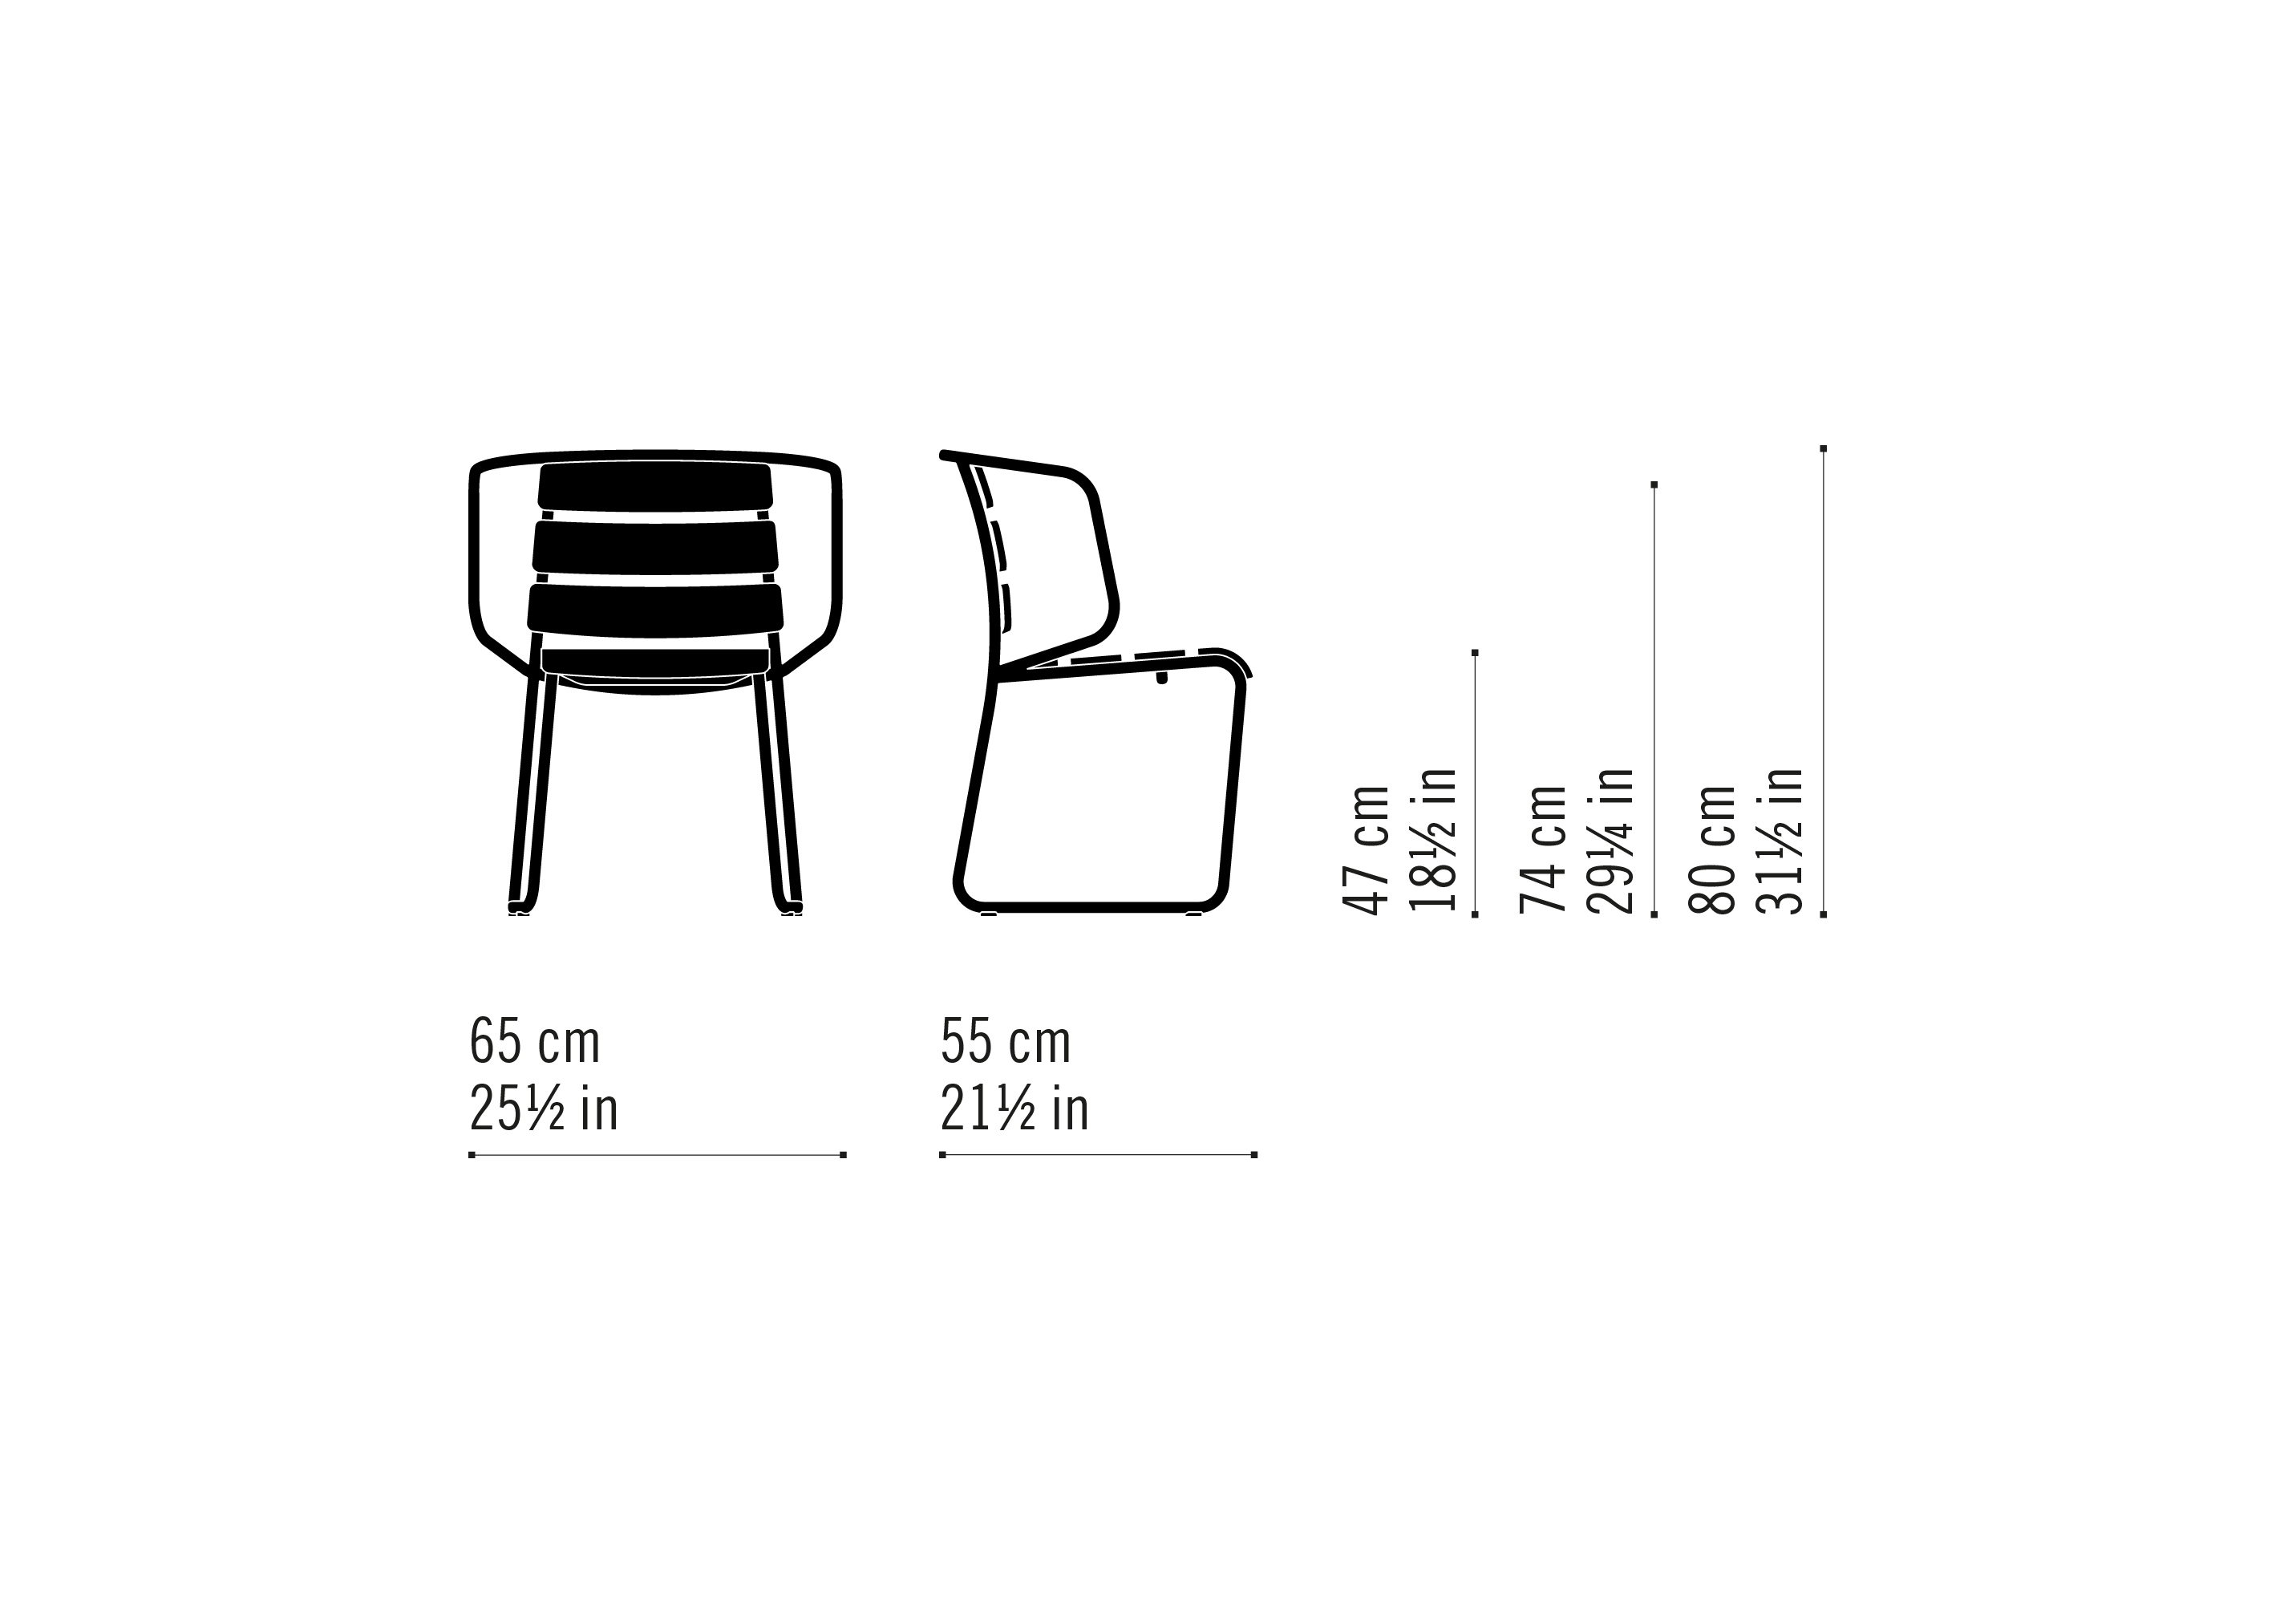 Misure Stacking Chair 02 / Lido Out